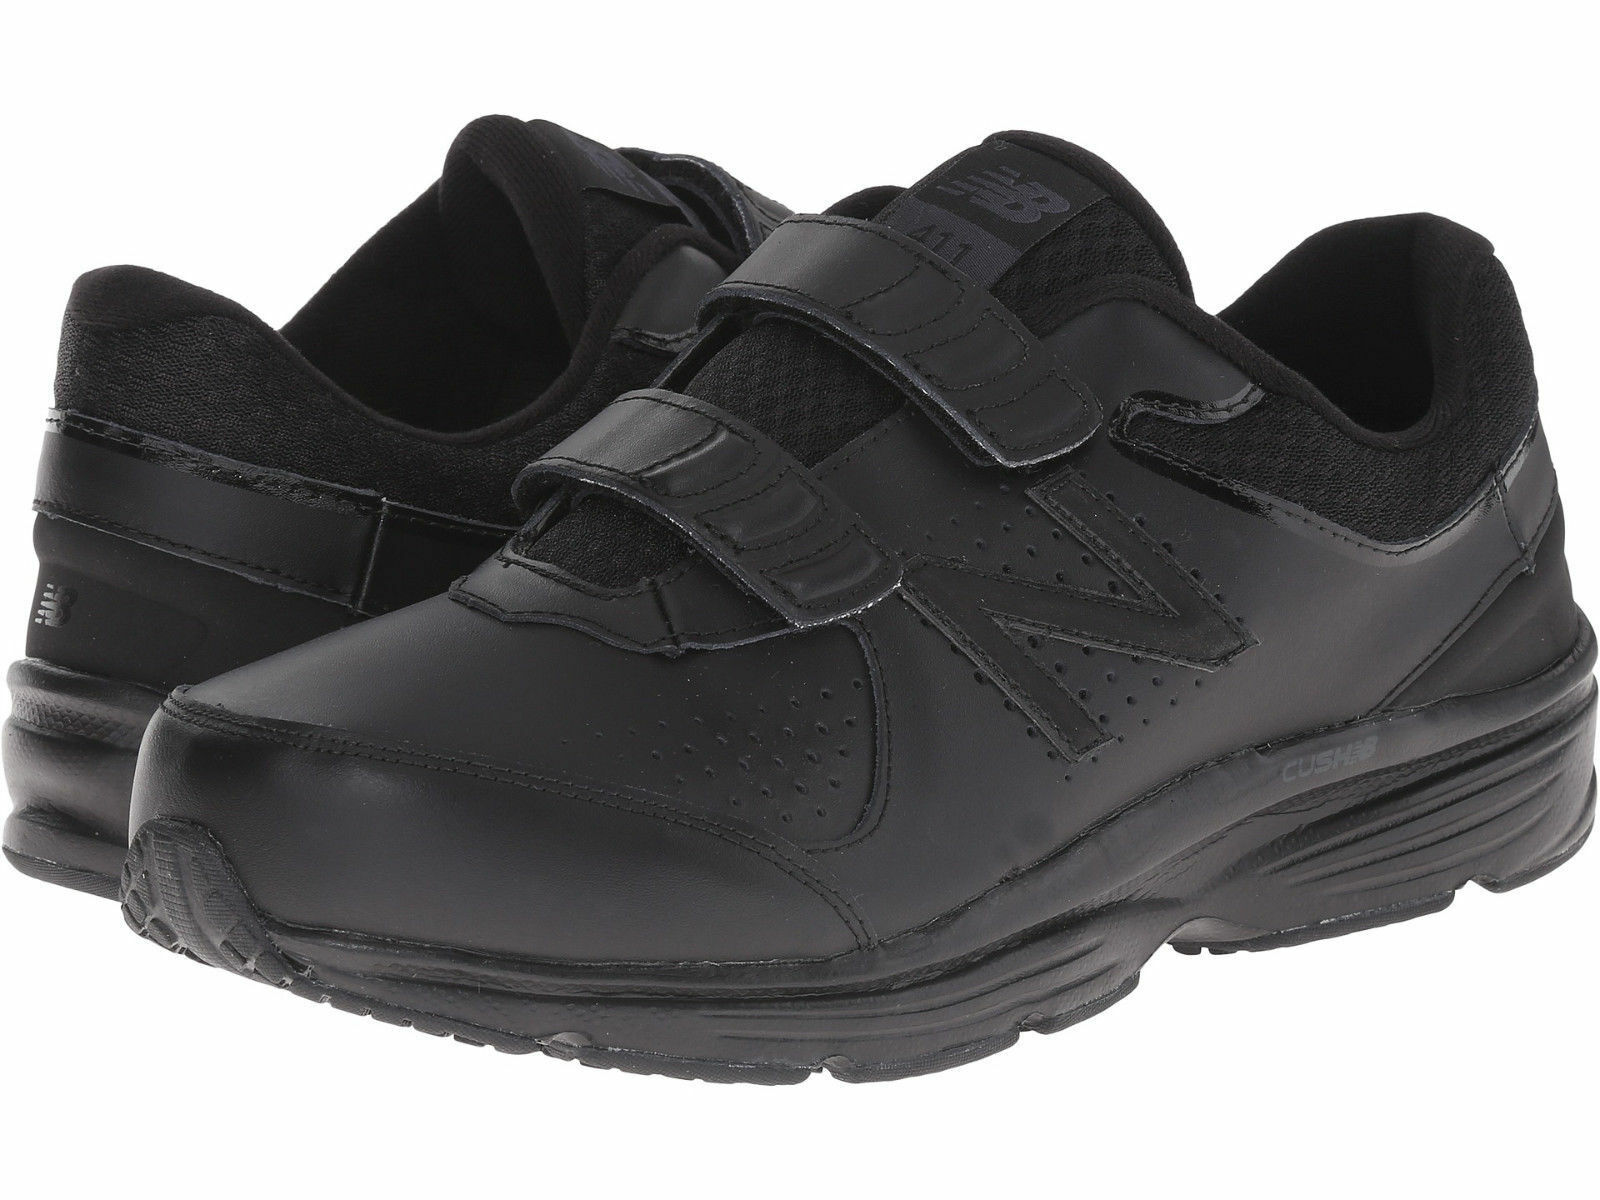 Homme New Balance MW411HK2 Walking Hook  Loop Extra Wide 4E Noir Authentic